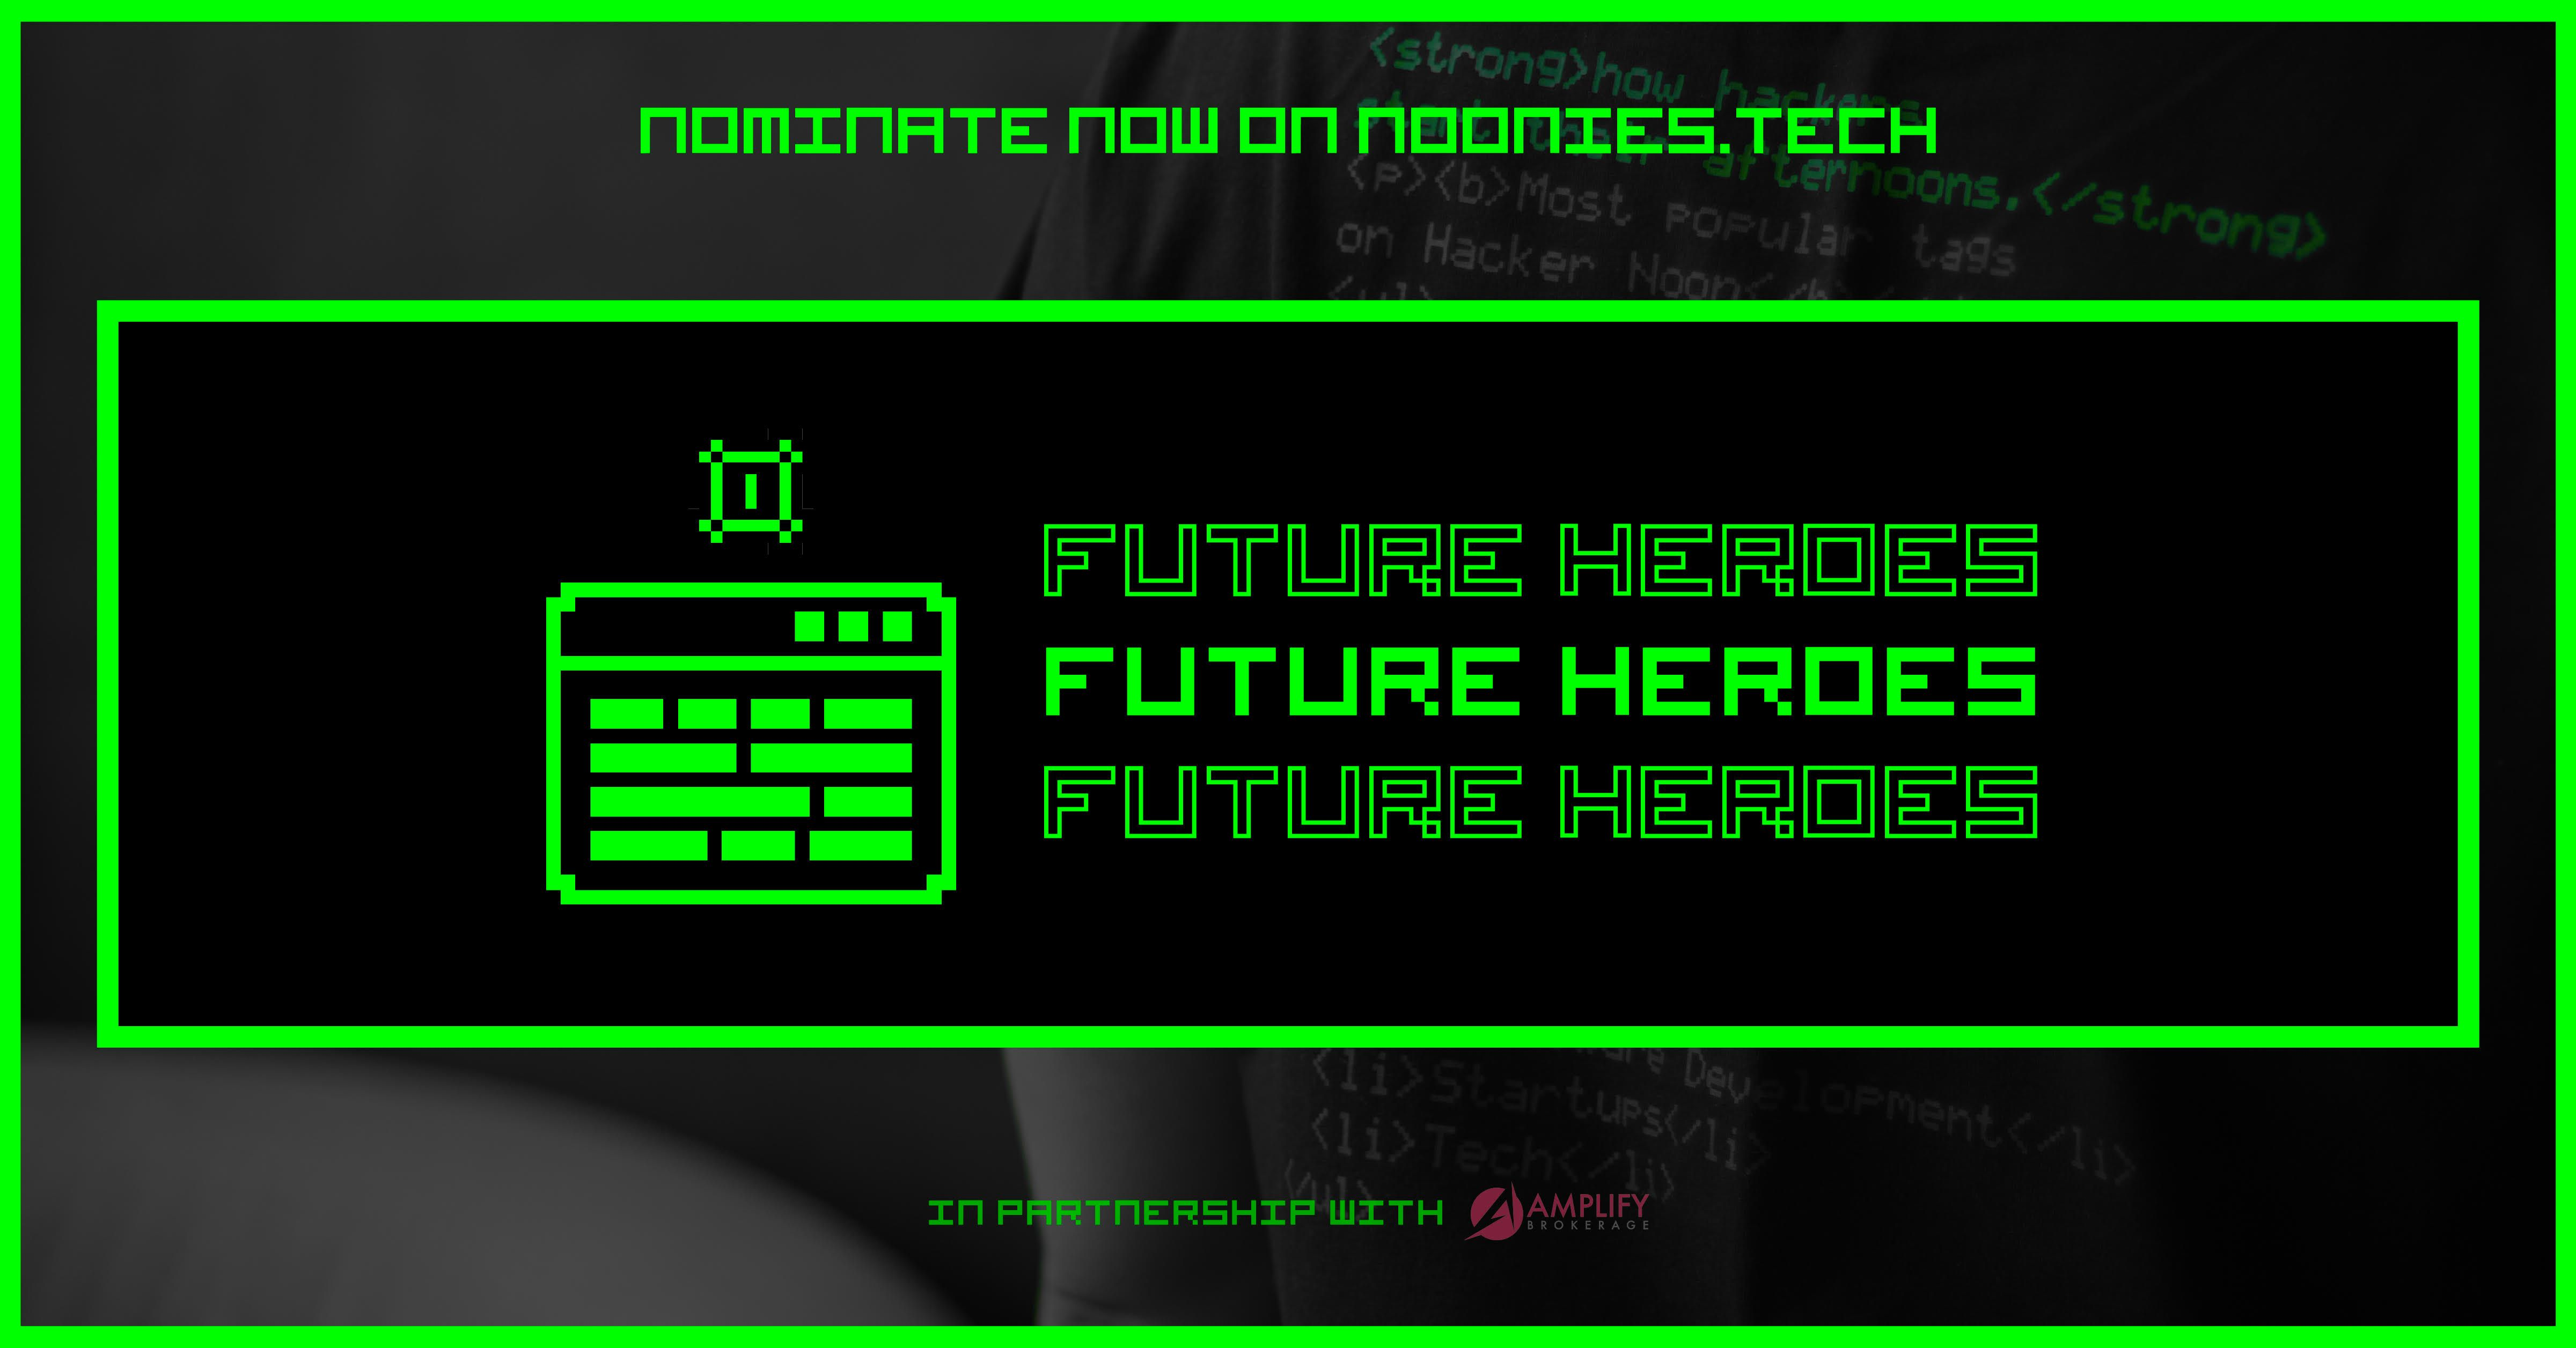 /programming-must-be-practiced-oftenaaron-newbold-20-noonie-nominee-programming-and-future-n8993u2a feature image